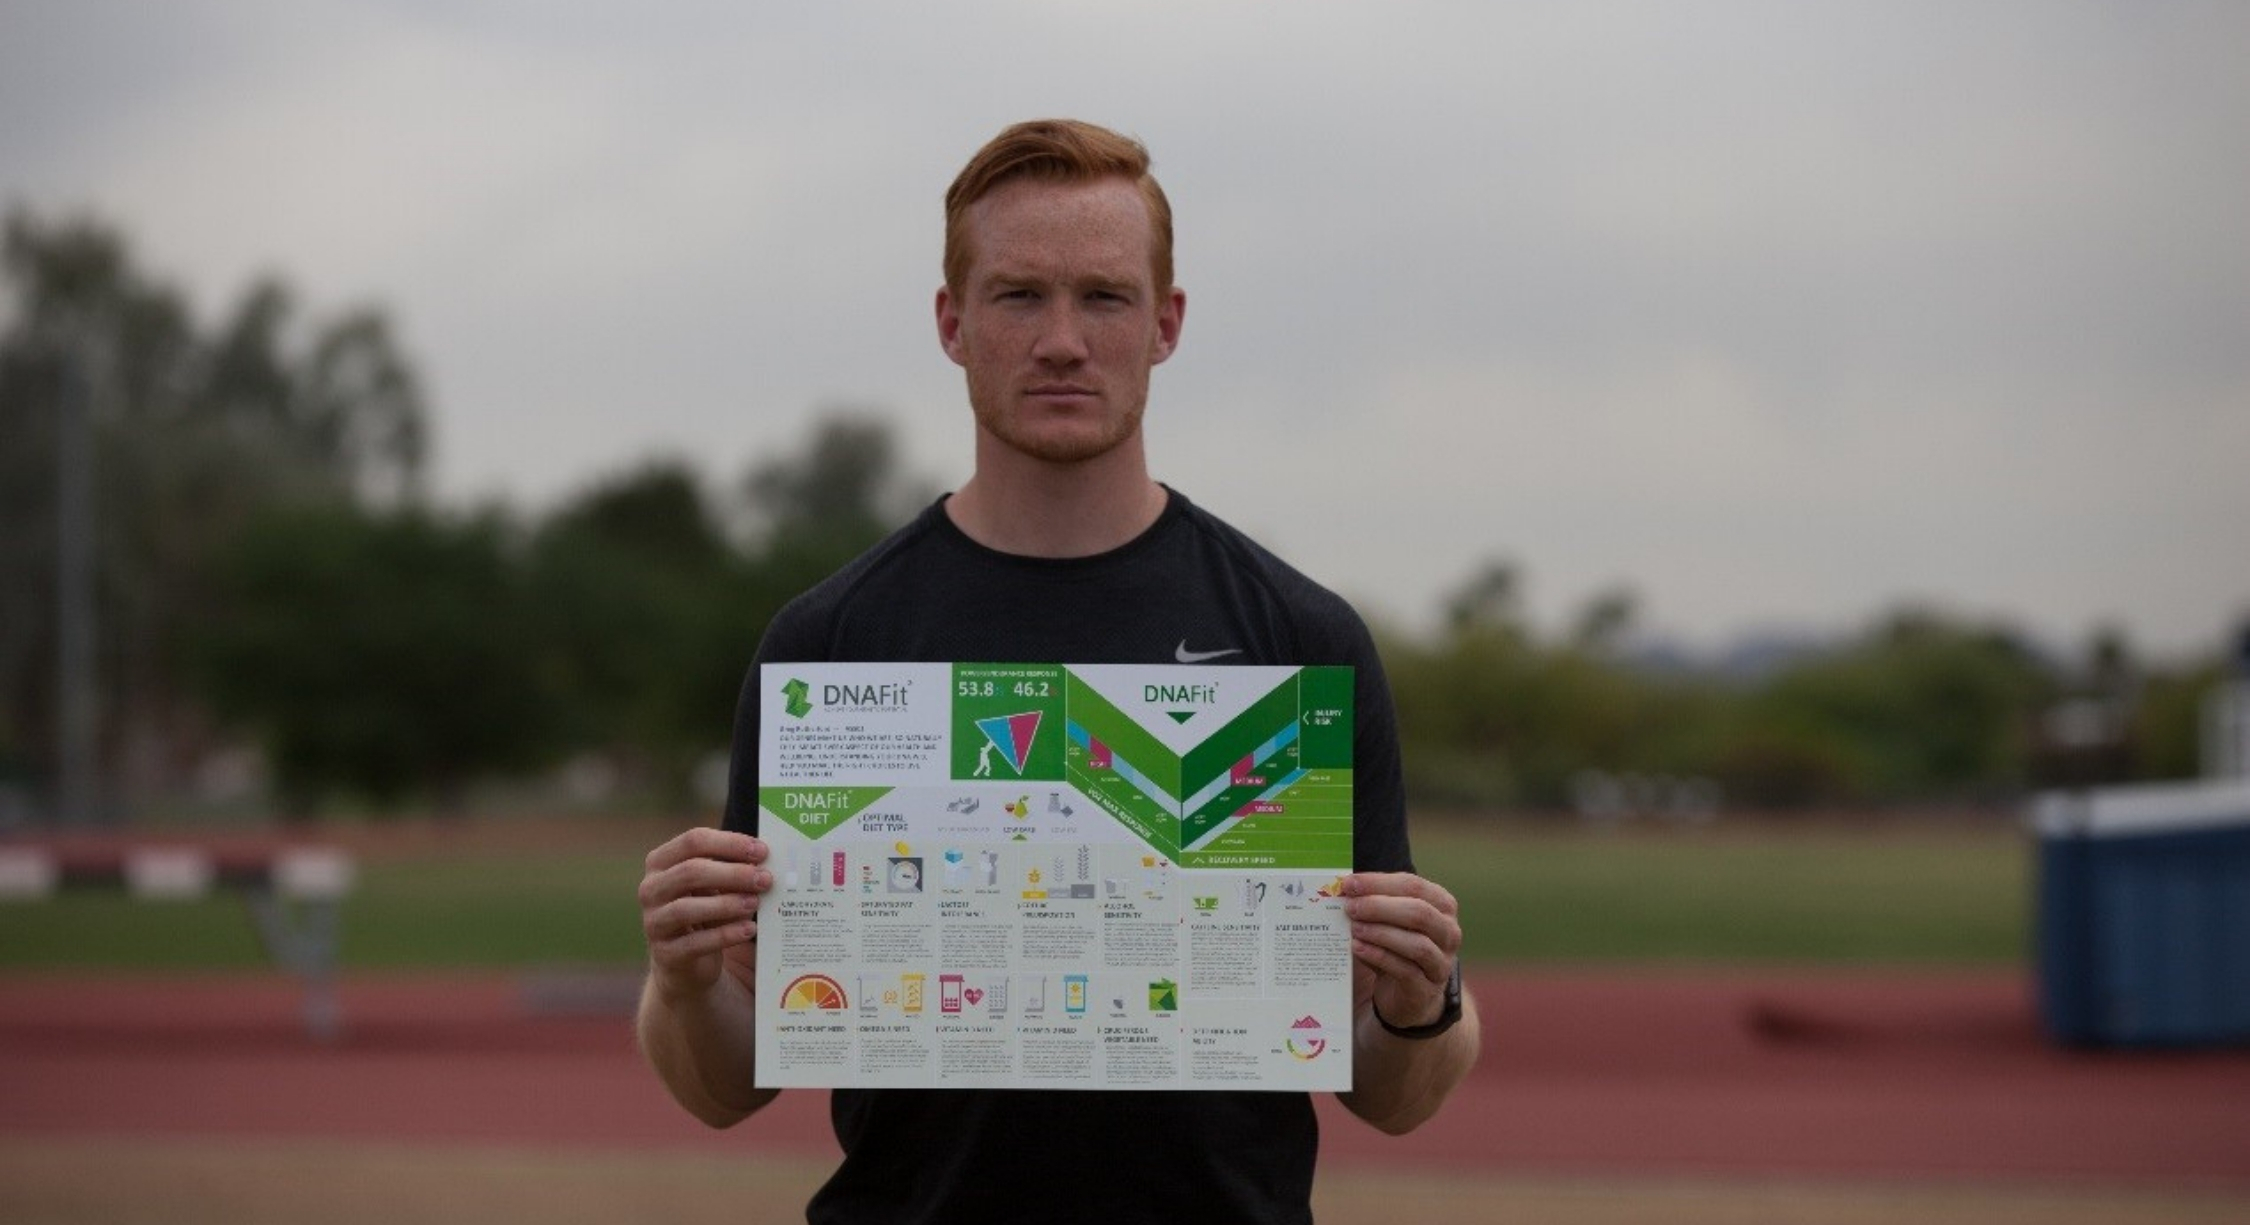 A day in the life of an athlete - Greg Rutherford